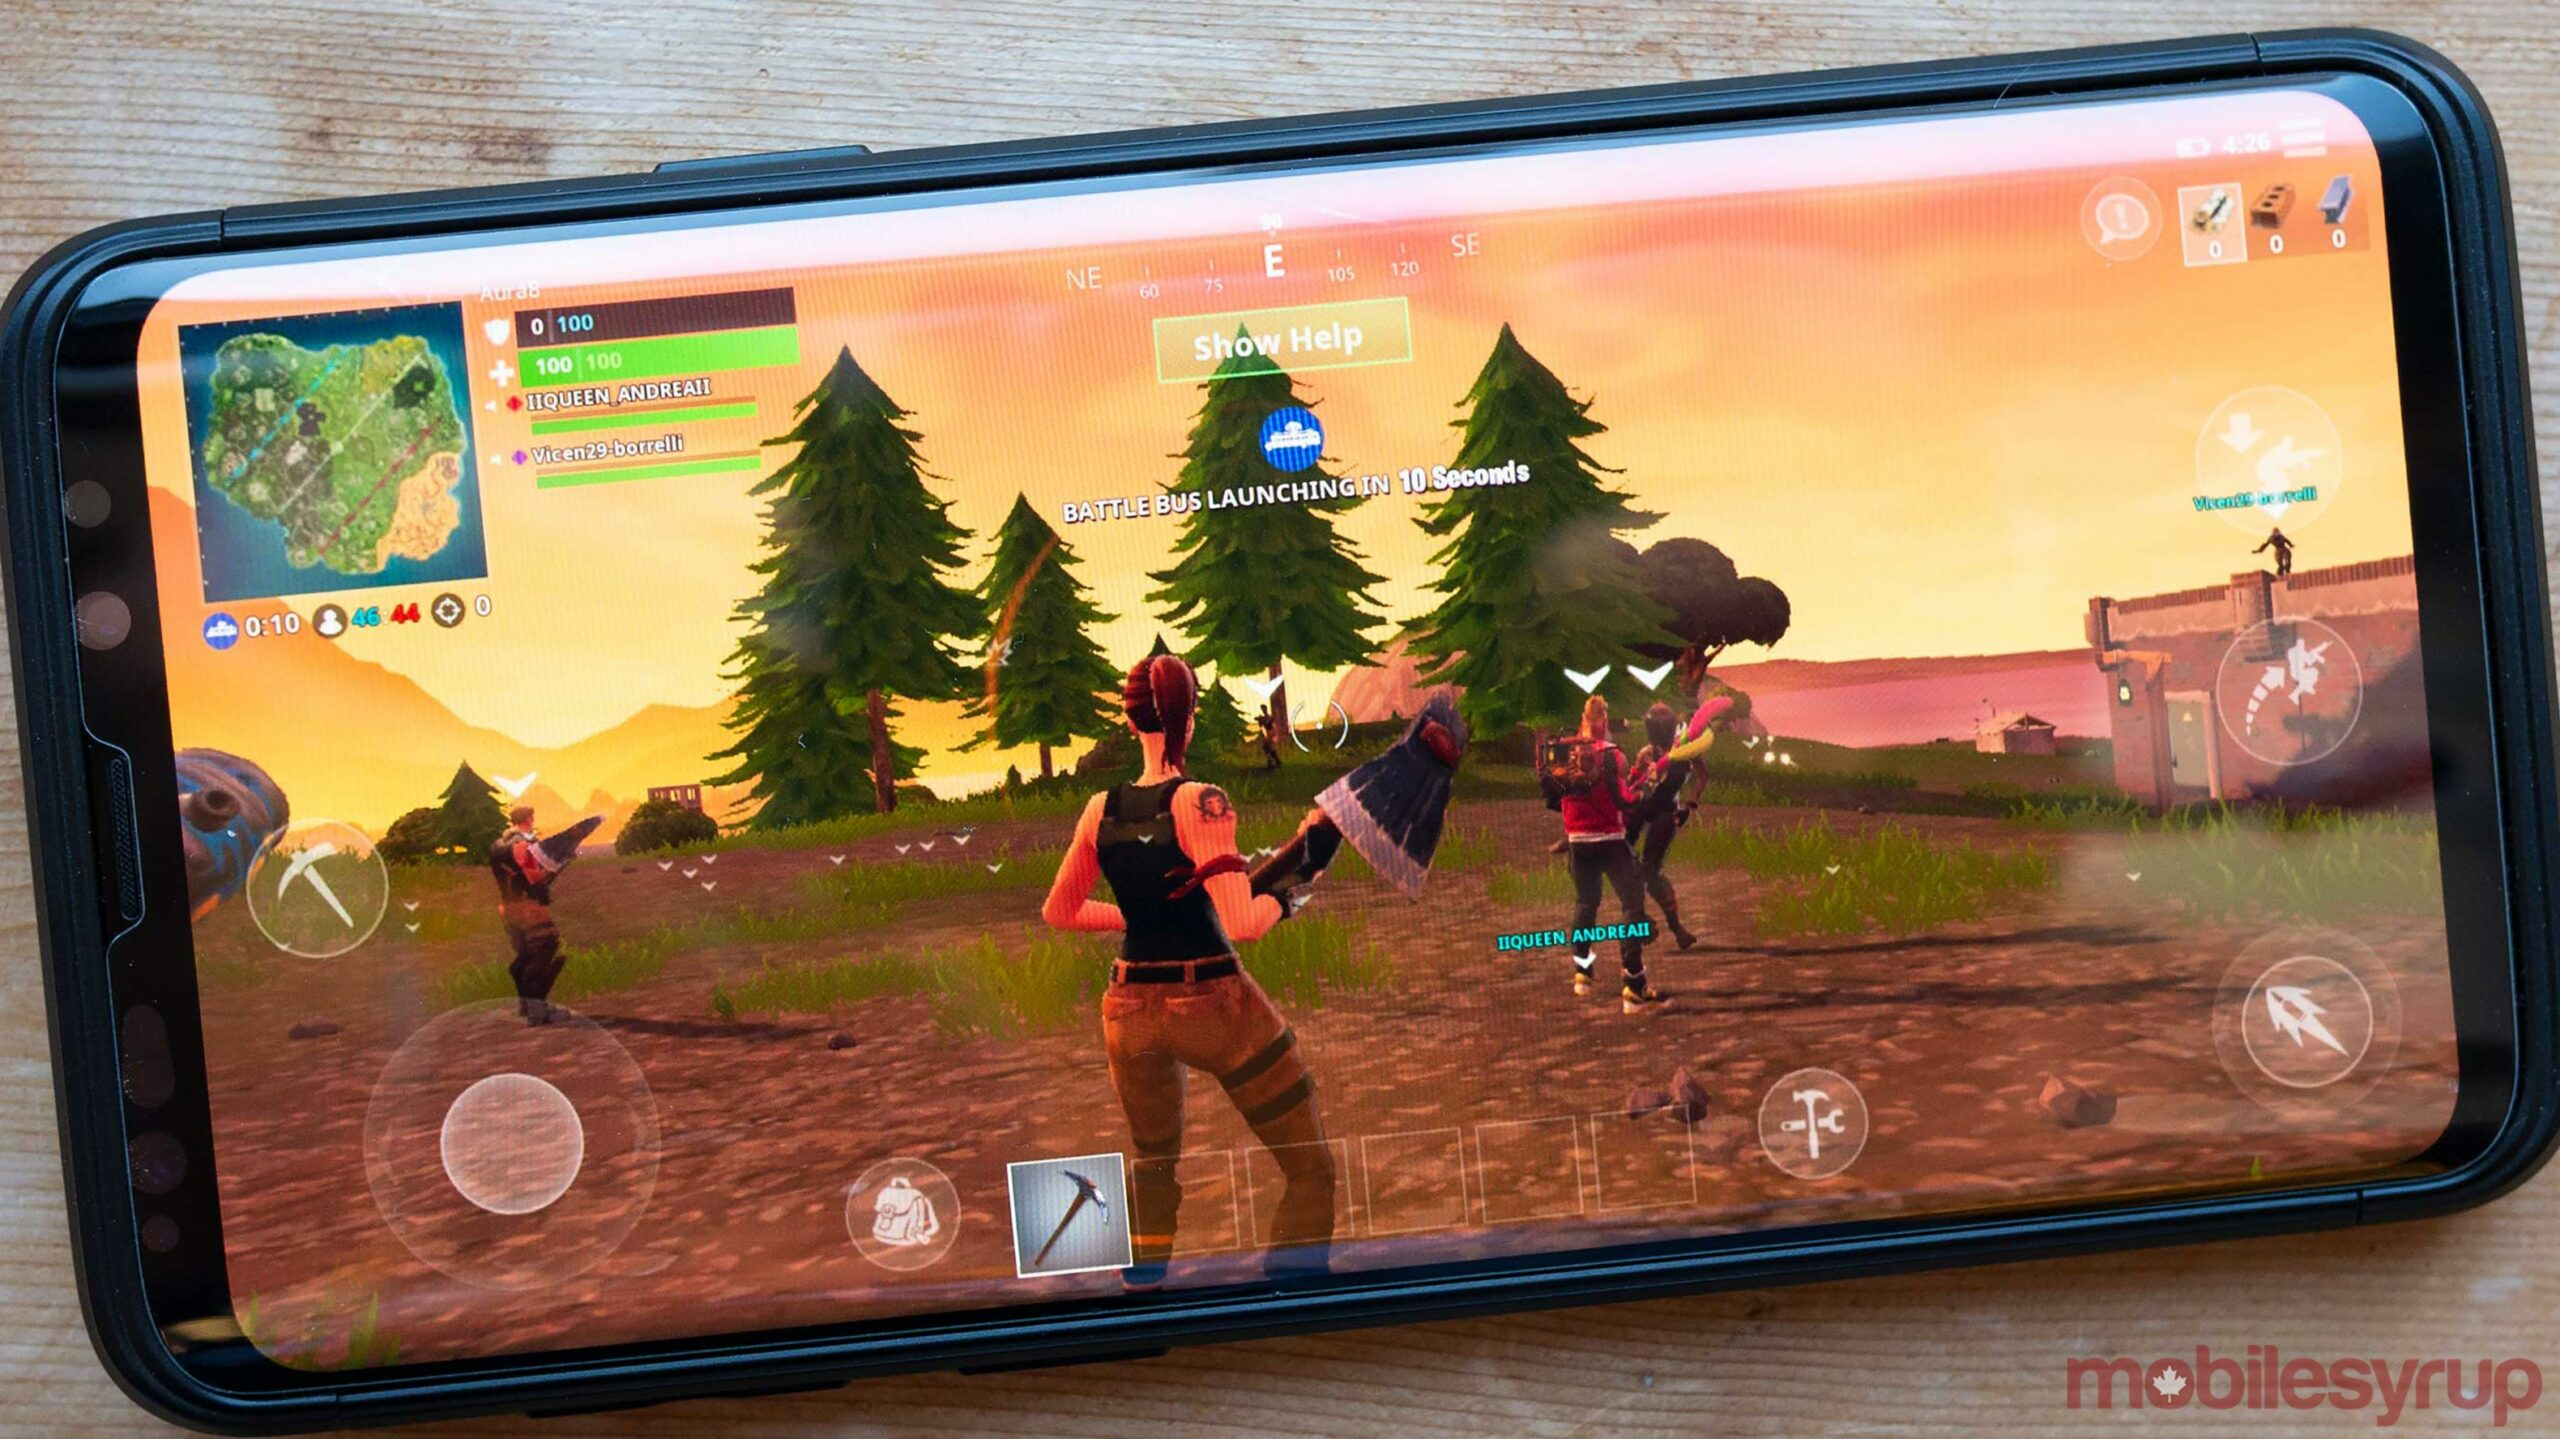 Fortnite Mobile Emote Oneplus Owners Can Get Their Hands On An Exclusive Fortnite Dance Emote